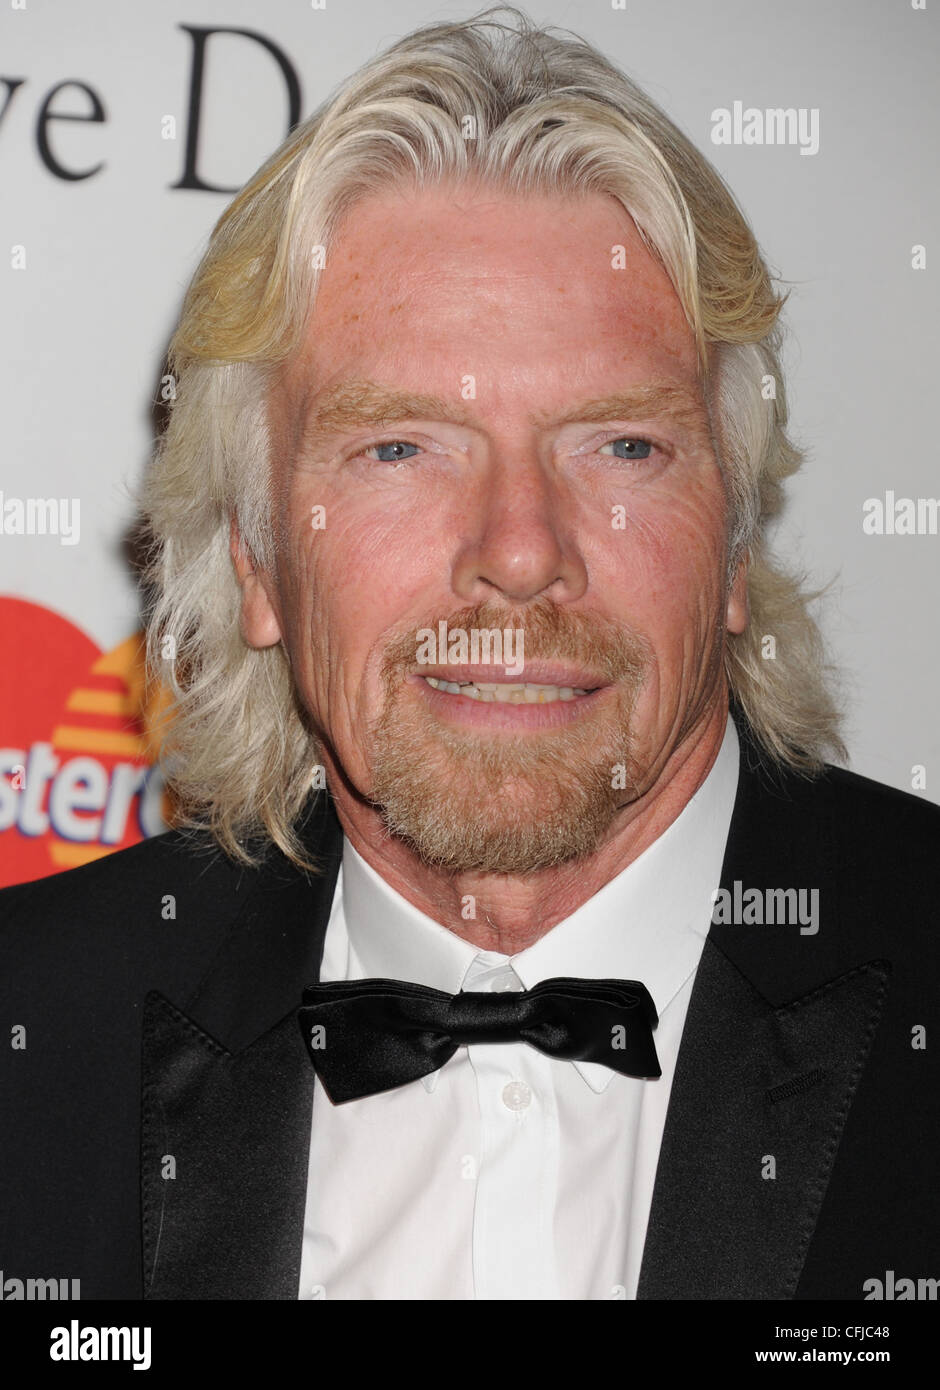 SIR RICHARD BRANSON UK businessman in February 2012. Photo Jeffrey Mayer - Stock Image